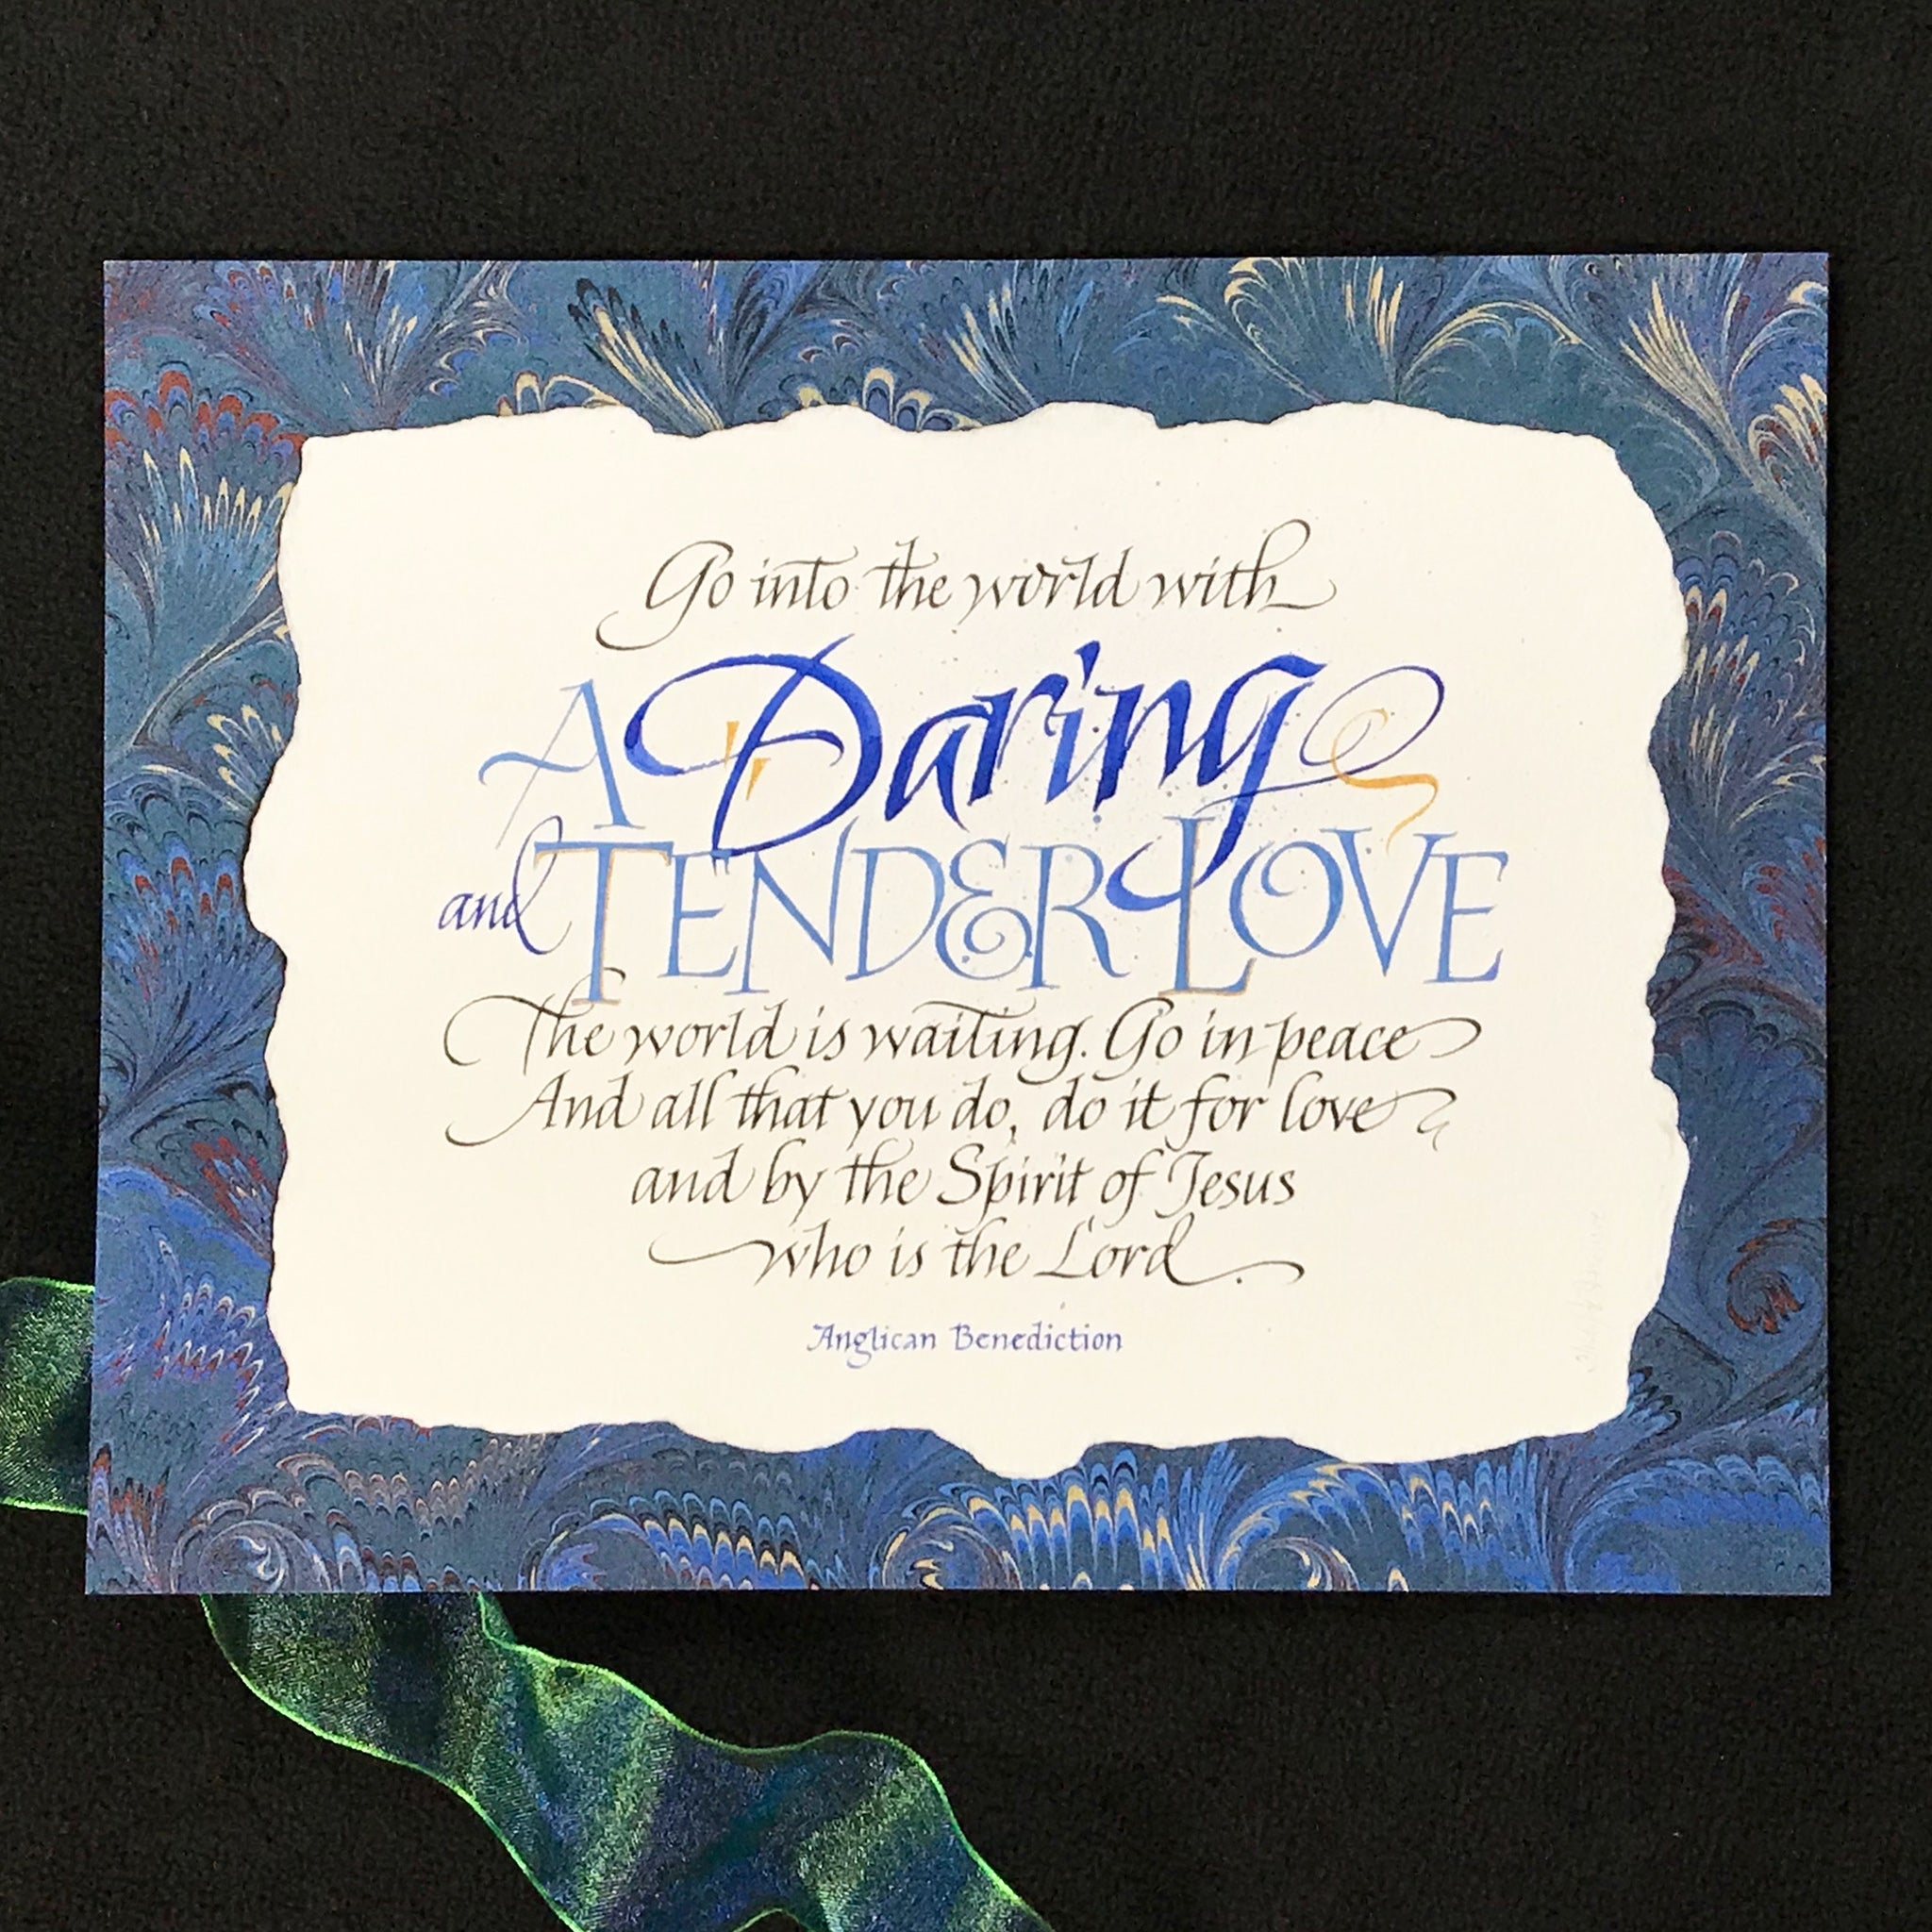 Go into the world with A Daring and Tender Love Anglican Benediction Holly Monroe Calligraphy